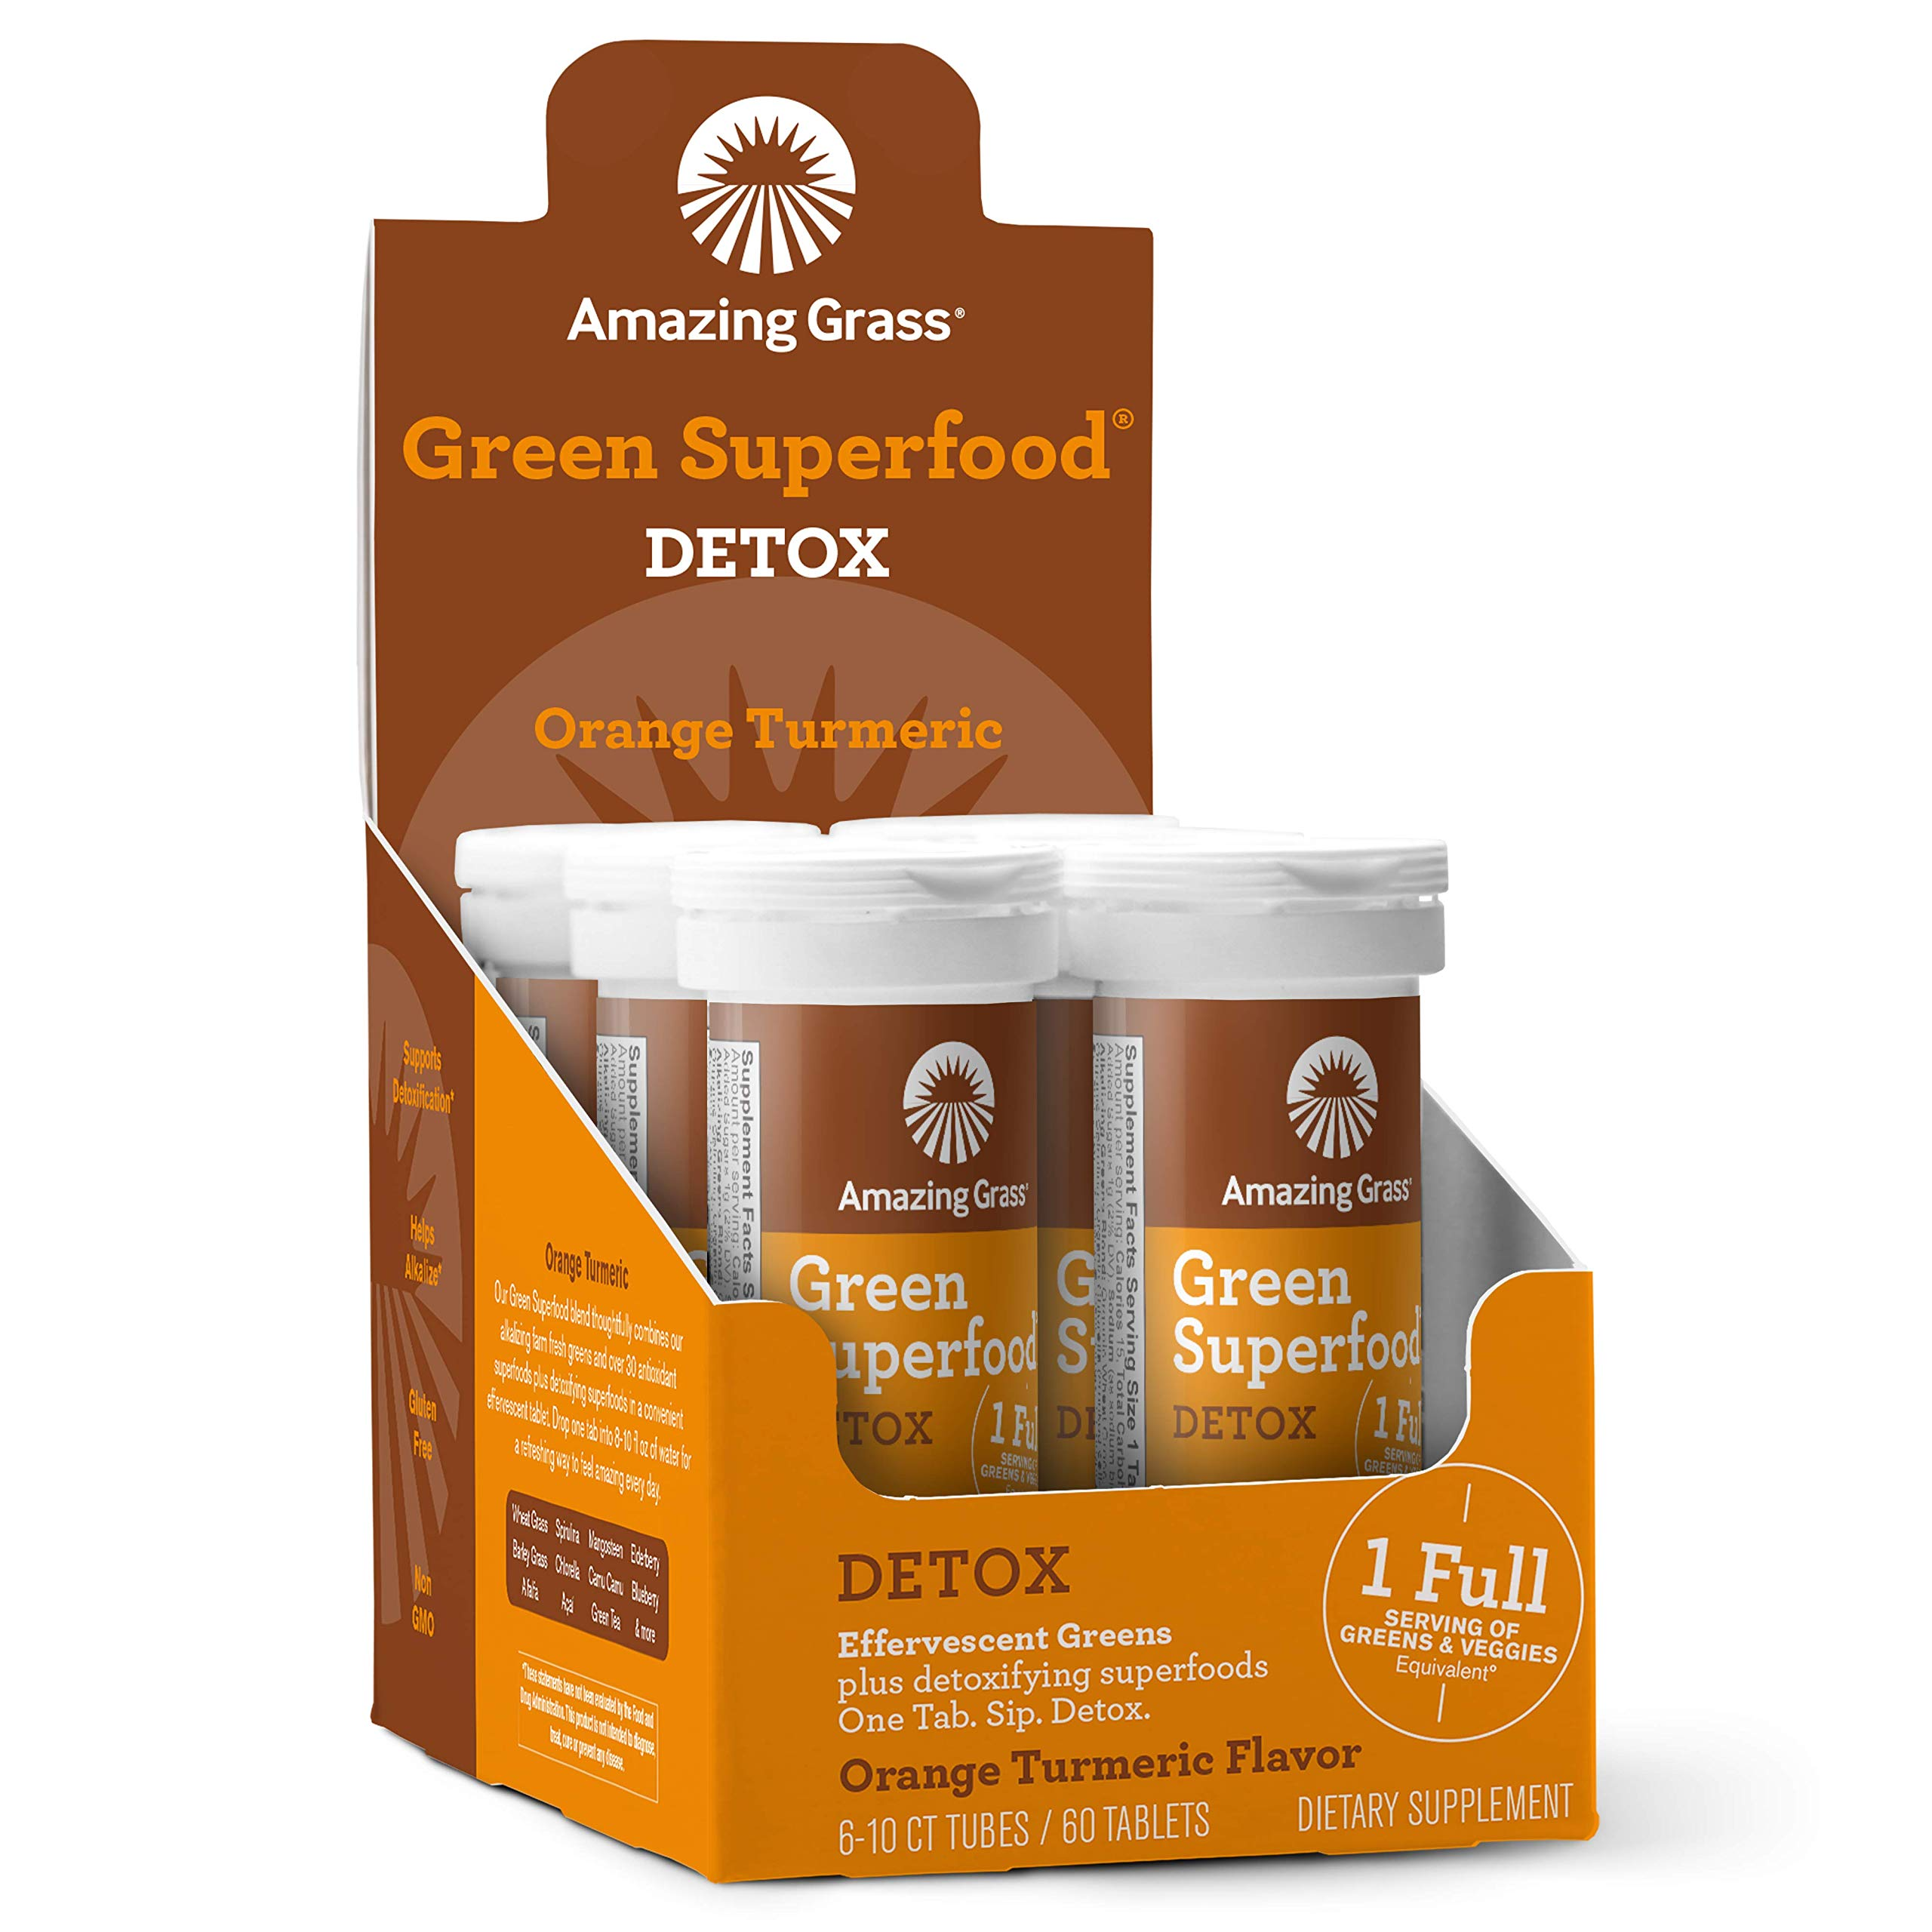 Amazing Grass Detox: Detoxifying Drink Tablets, Orange Turmeric Flavor, Box of 6 Tubes (60 servings), with Antioxidants for inflammation support & One Serving of Greens by Amazing Grass